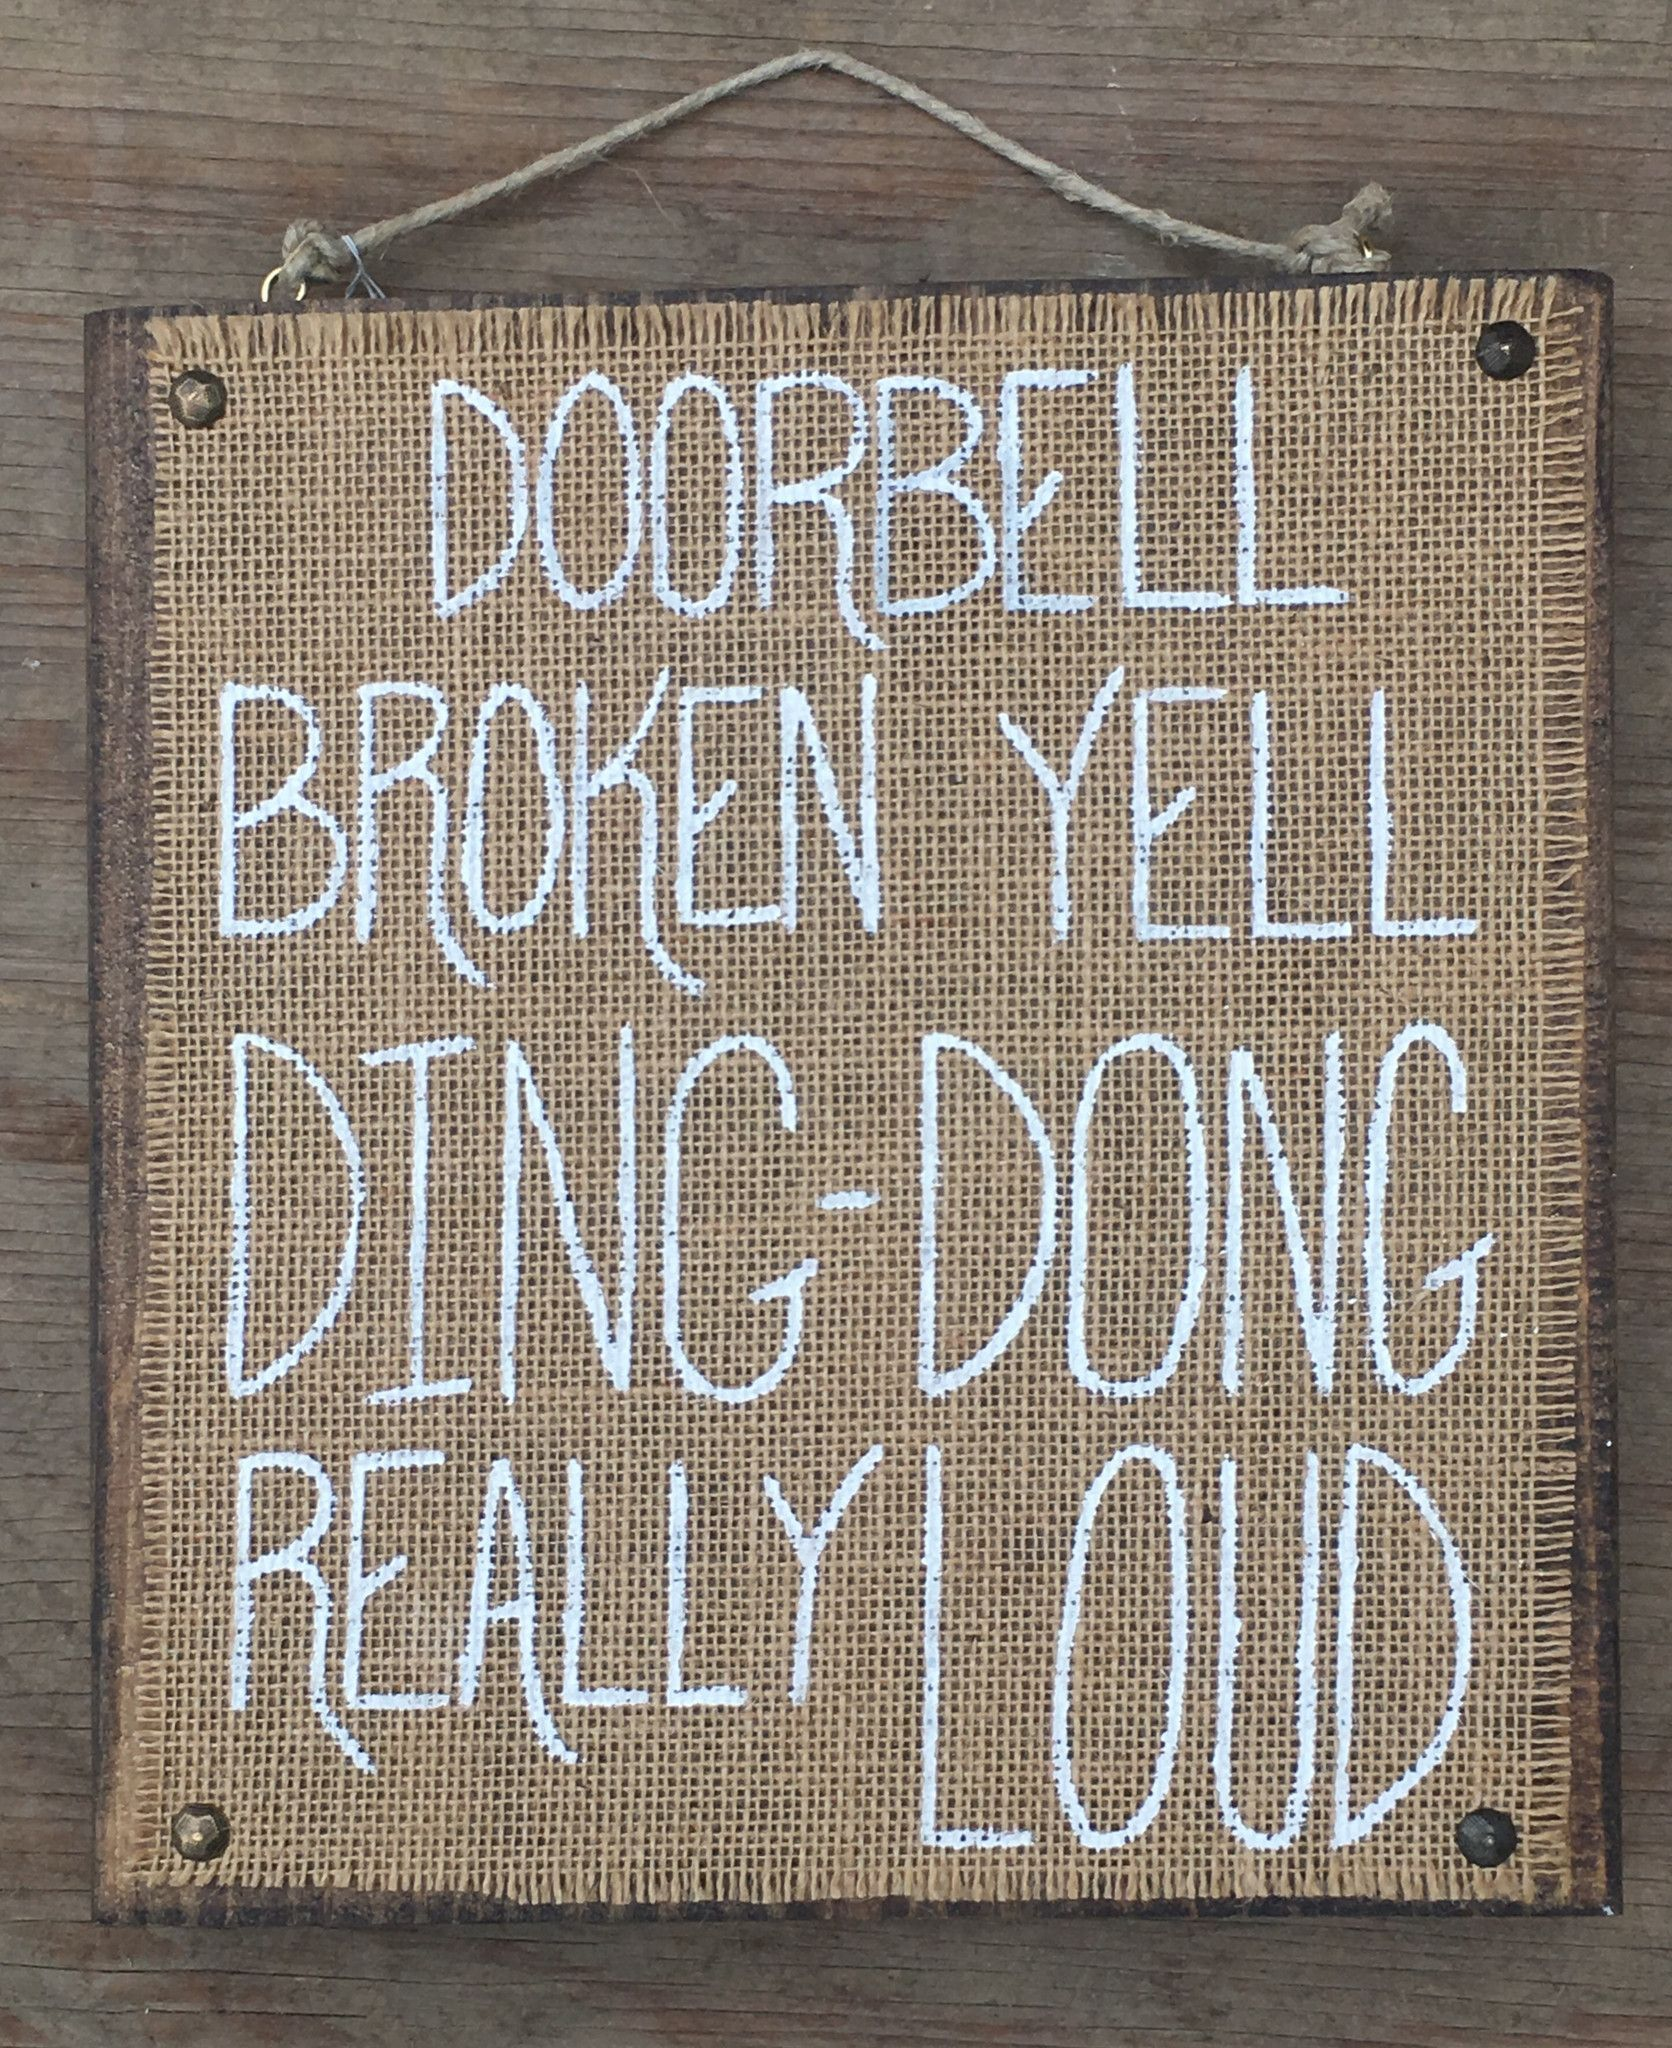 The home front porches porch signs wooden animal signs wooden signs - Doorbell Broken Yell Ding Dong Really Loud Burlap On Wood Sign Perfect For Your